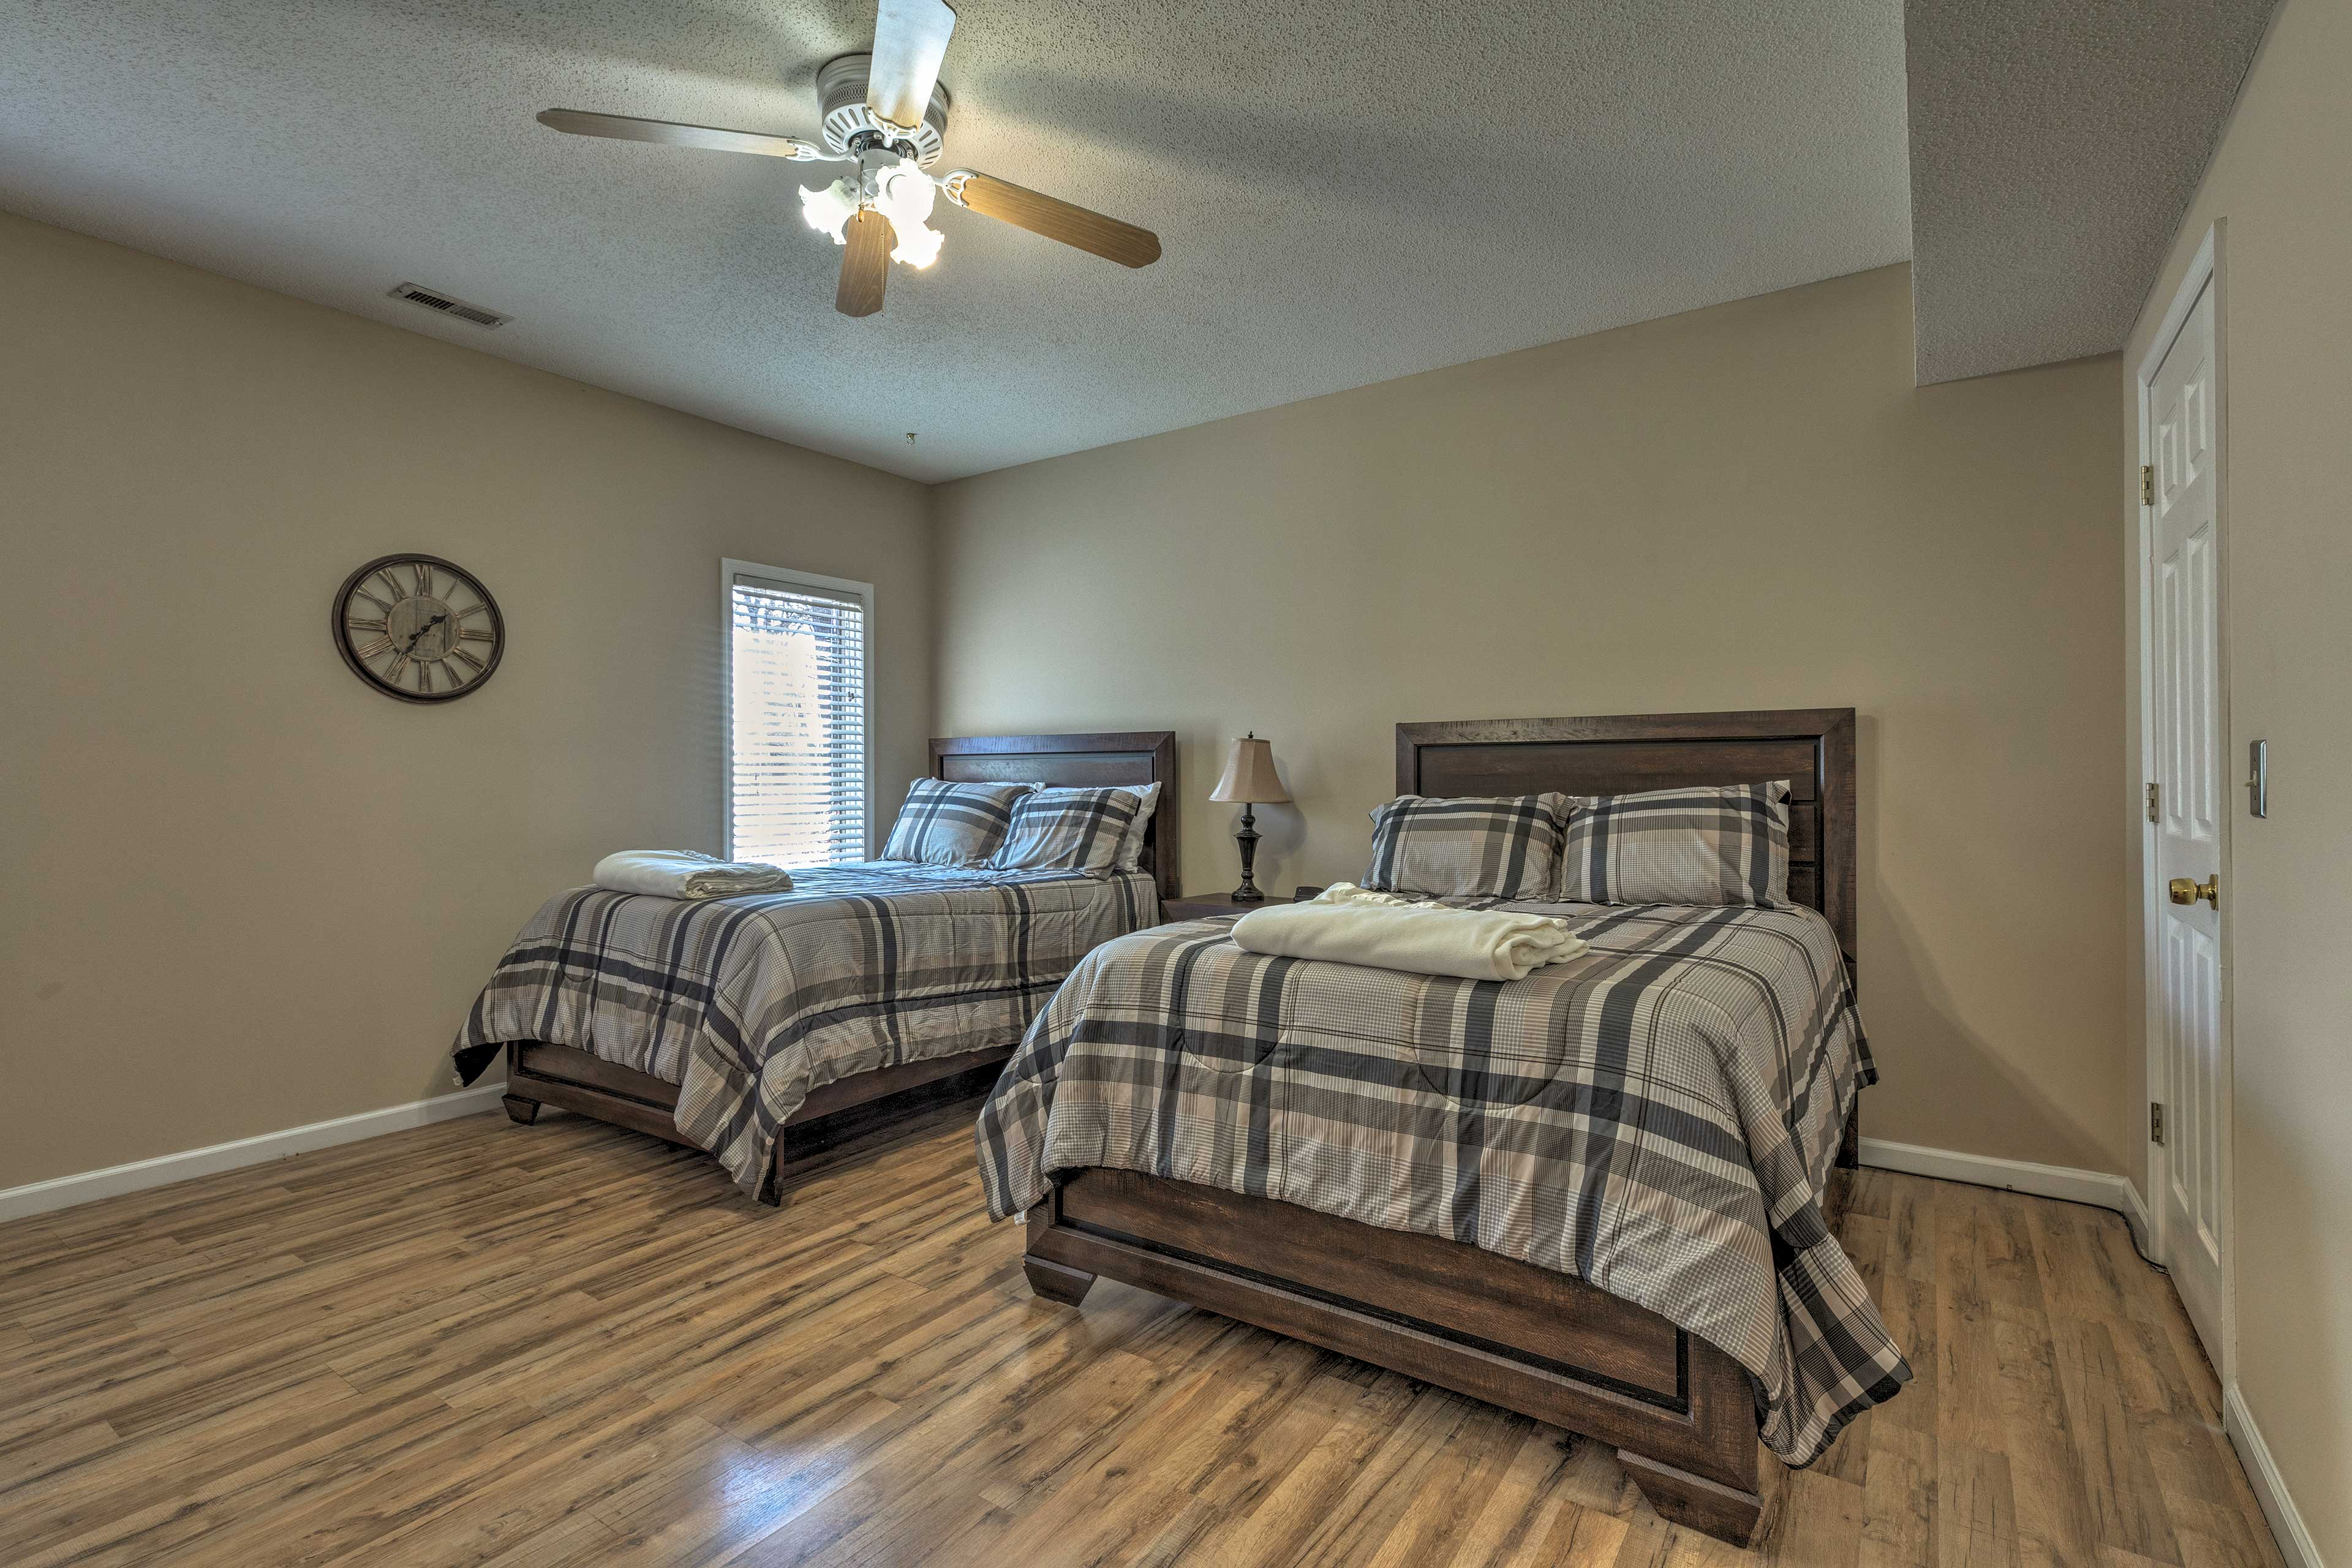 Up to 4 travelers can stay in this fourth bedroom.